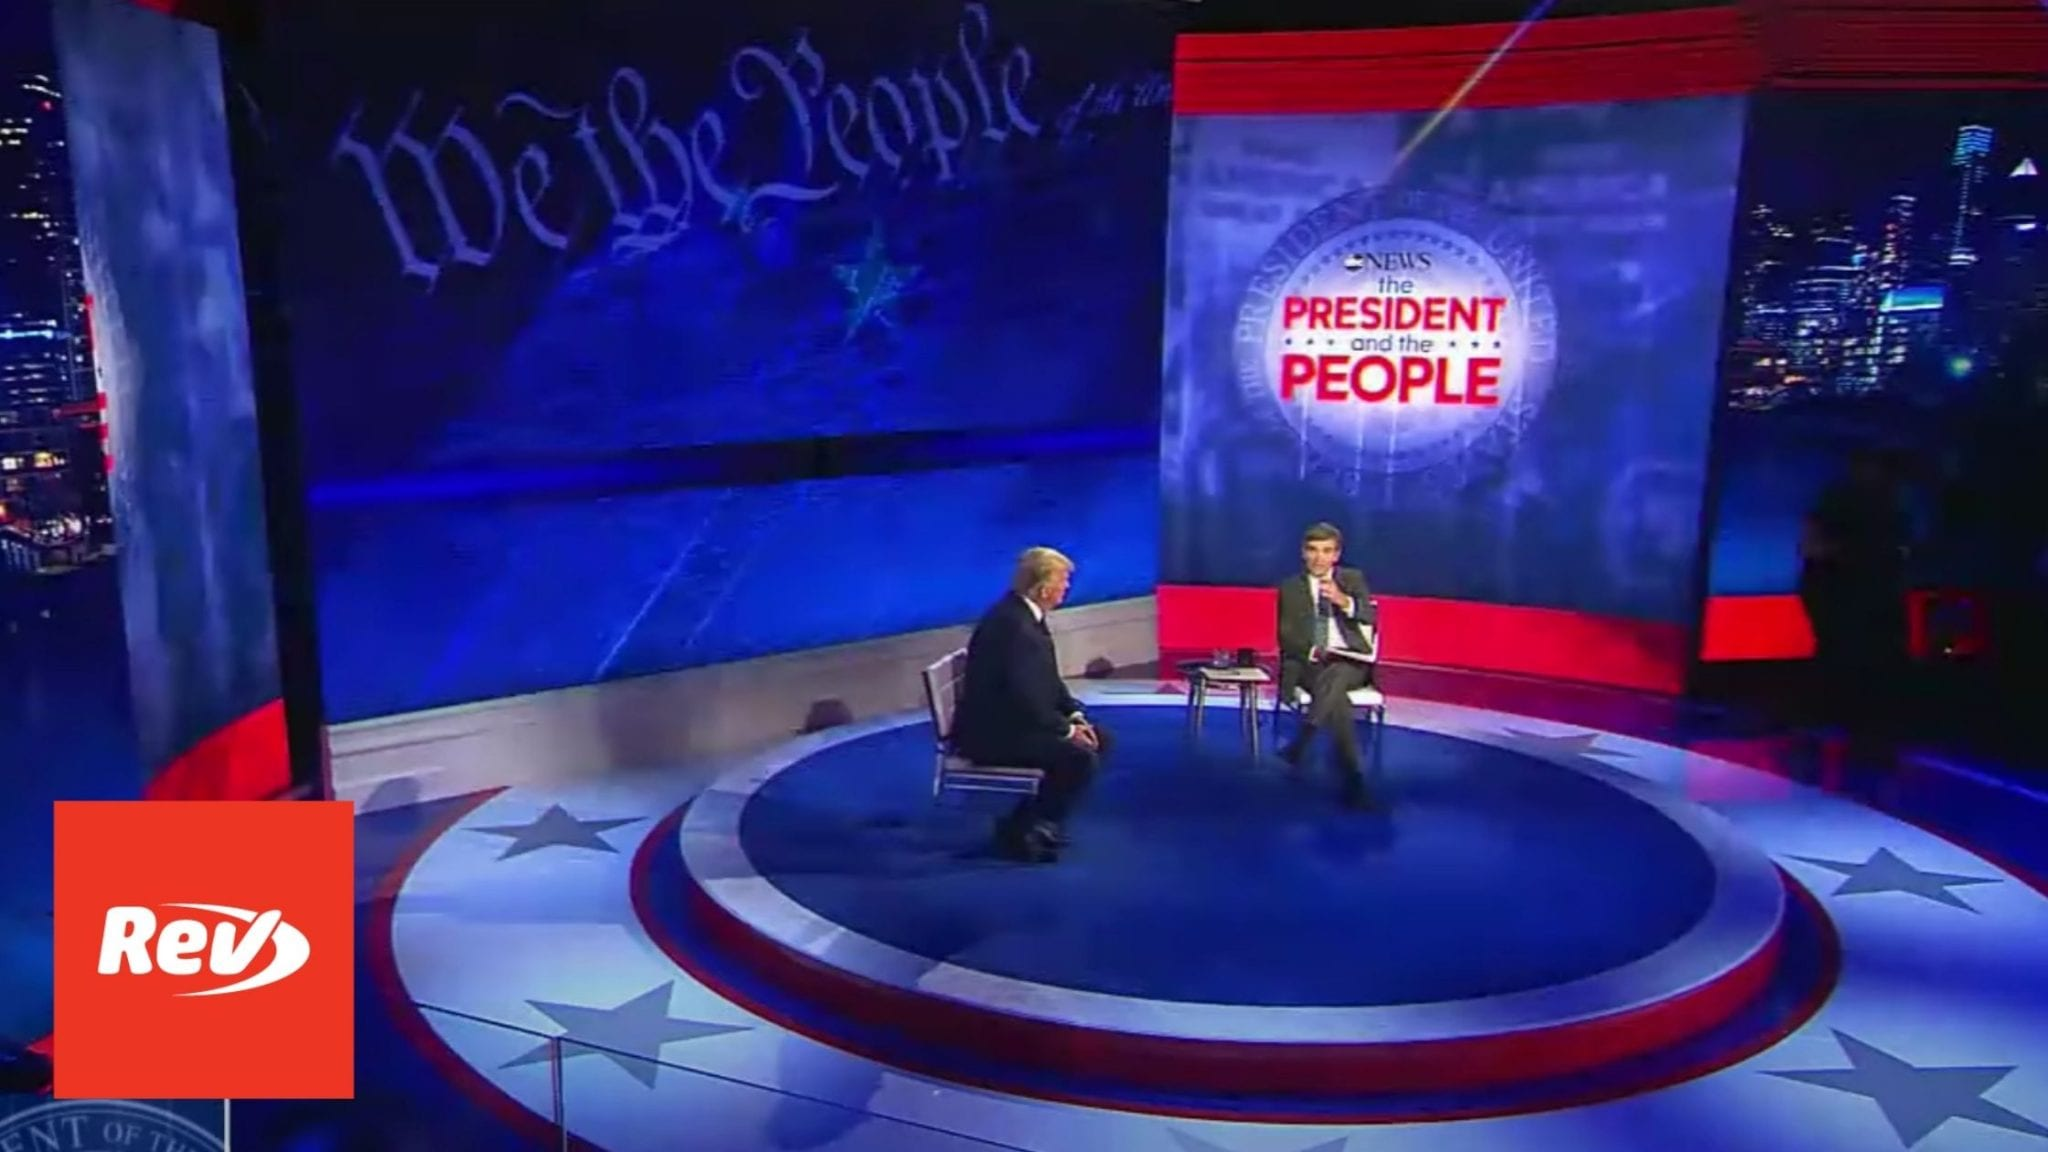 Donald Trump Abc News Town Hall Transcript With George Stephanopoulos In Philadelphia Rev